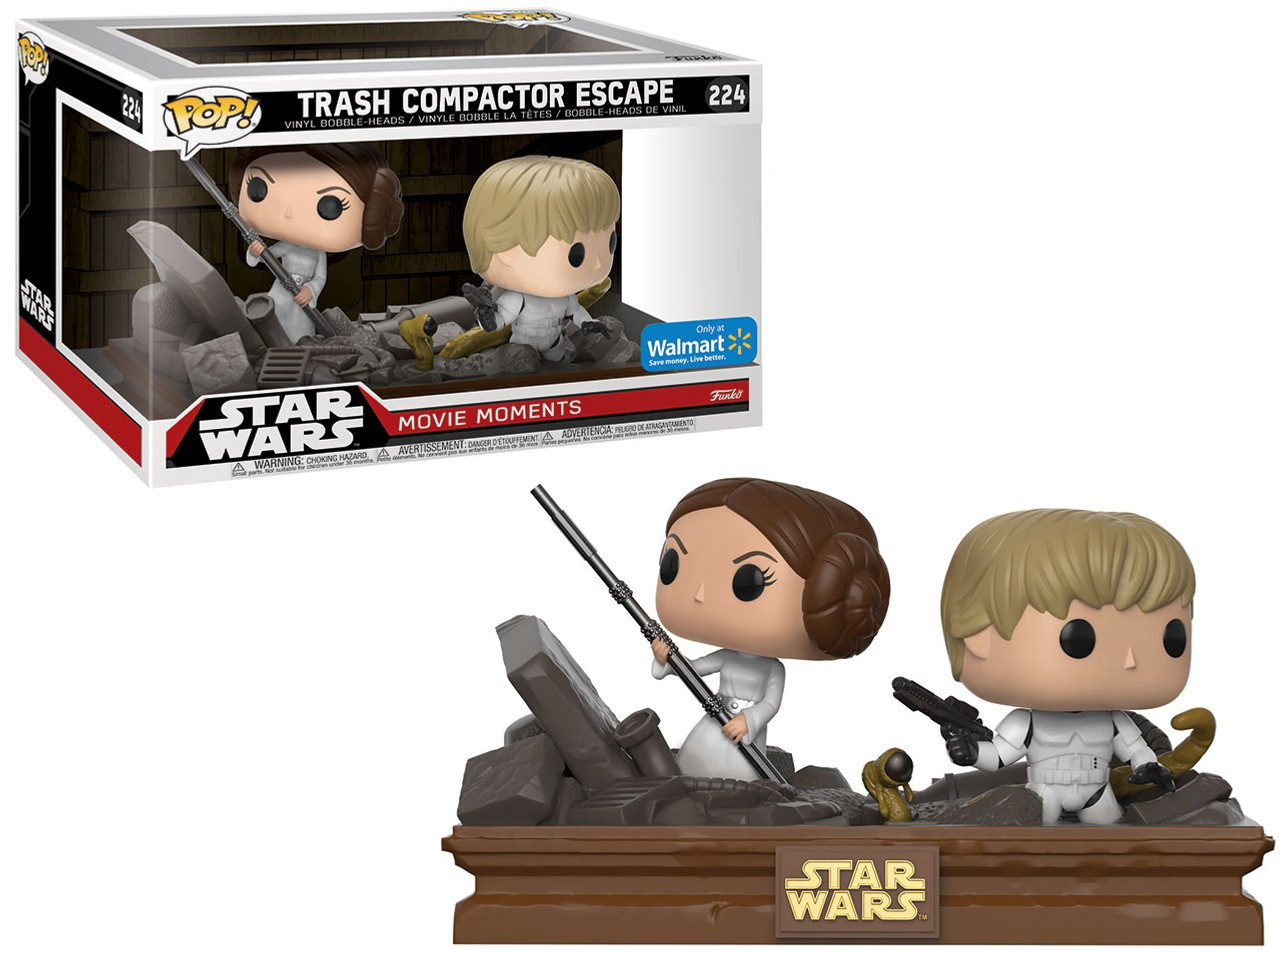 Funko Star Wars Funko Pop Star Wars Trash Compactor Escape